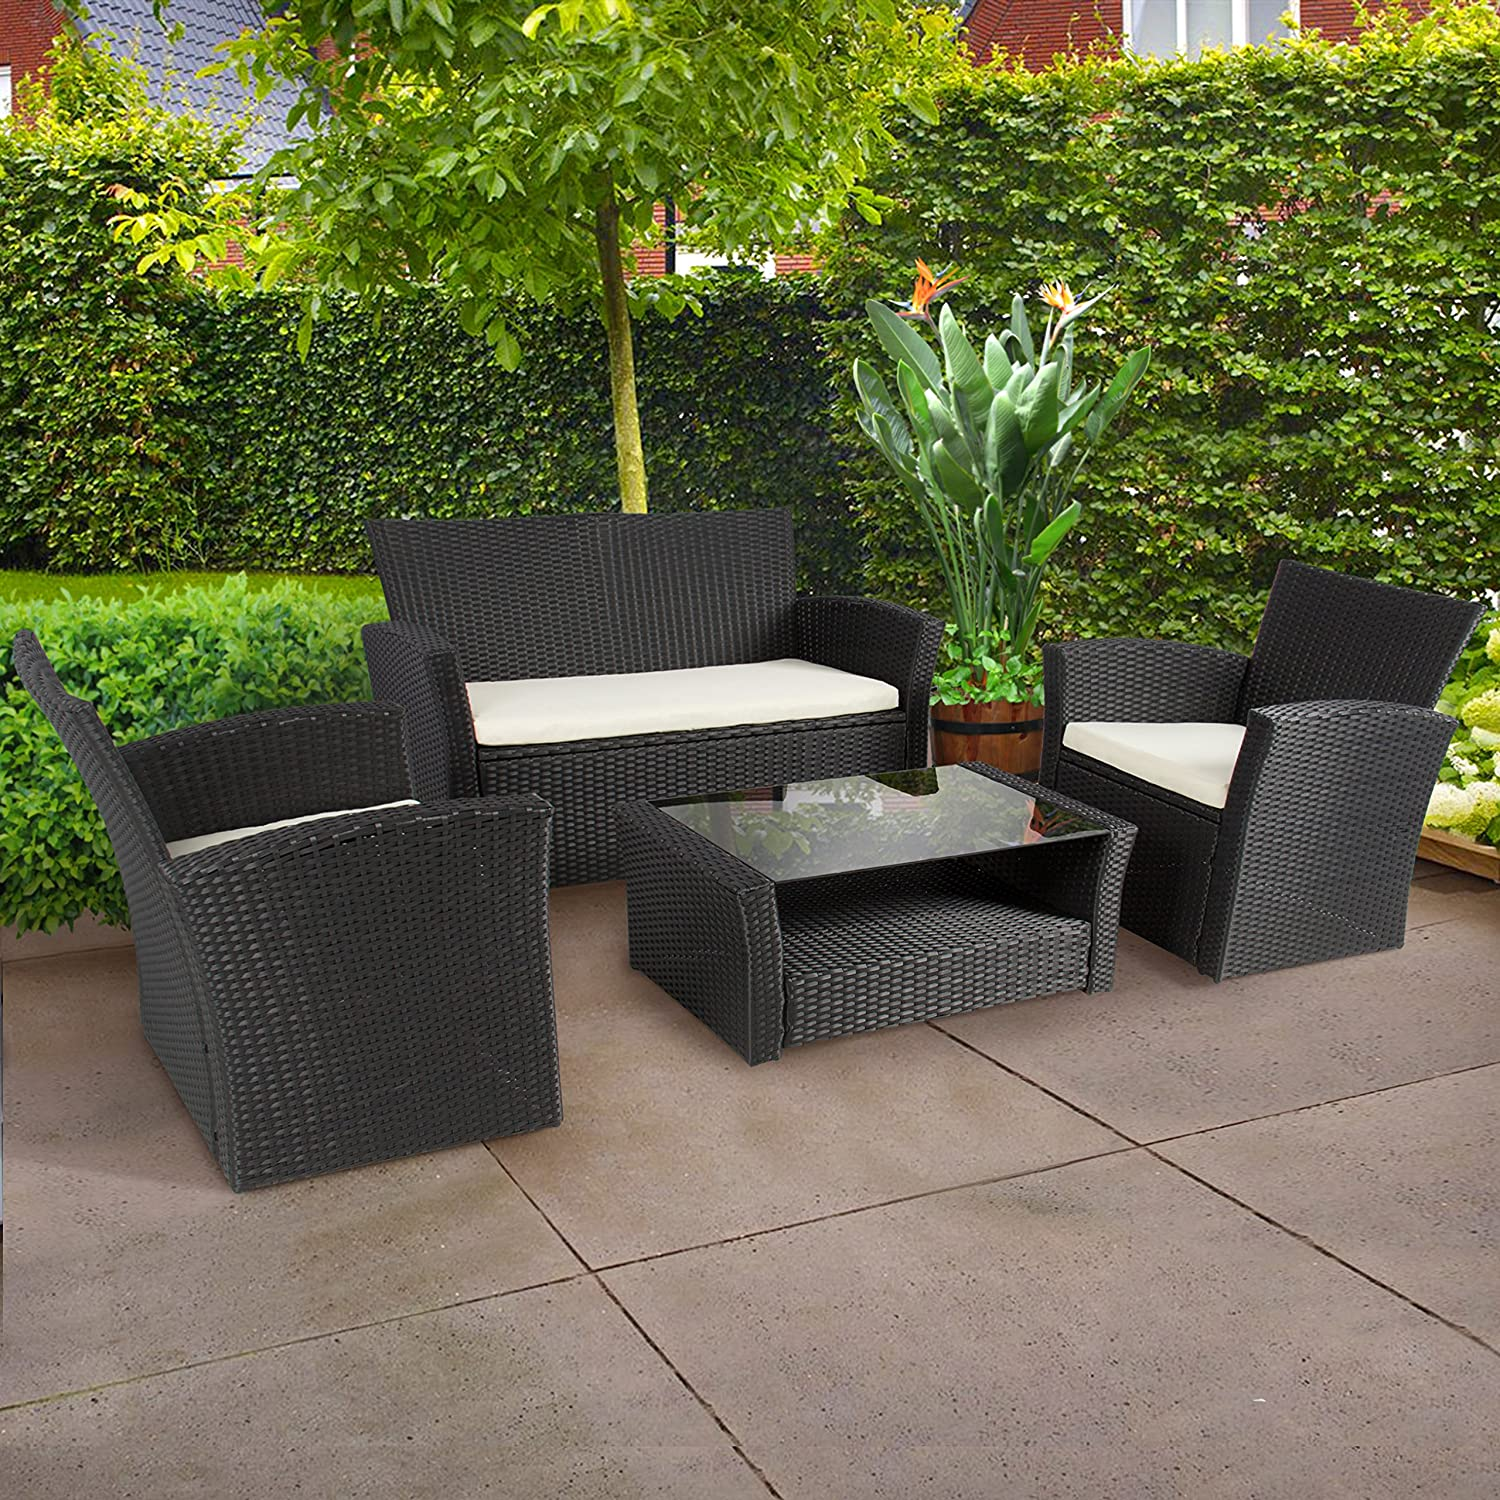 amazoncom best choice products 4pc outdoor patio garden furniture wicker rattan sofa set black garden outdoor